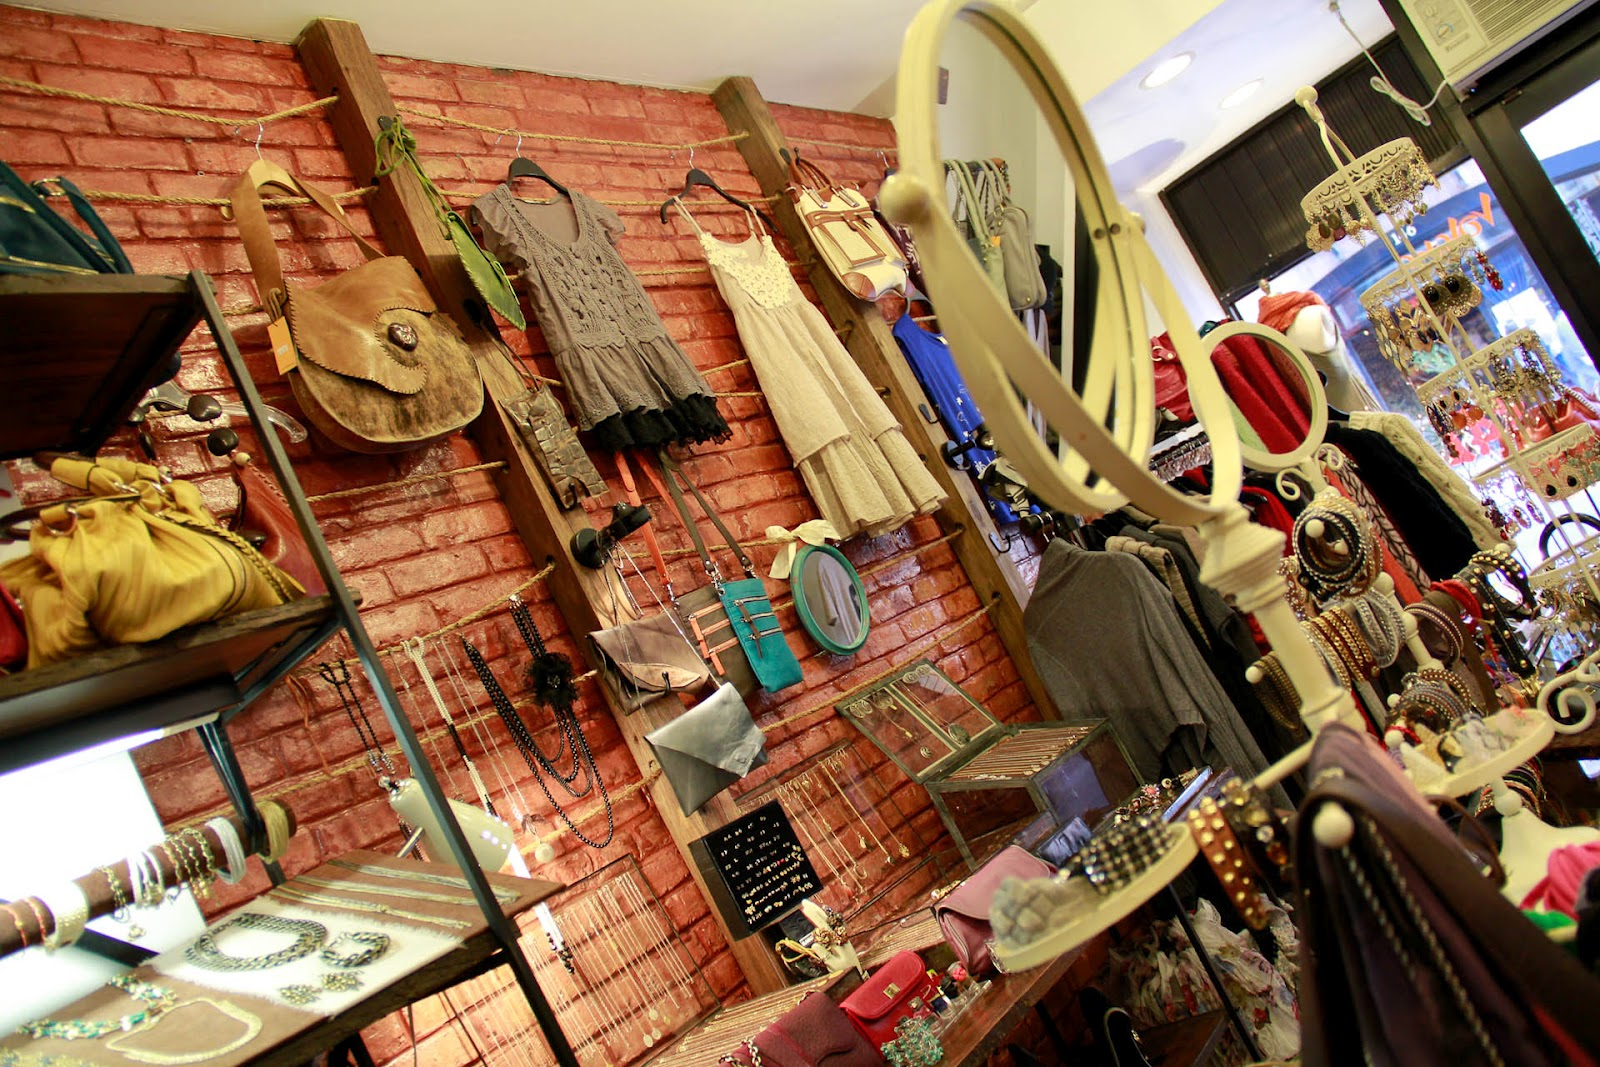 Alternative clothing stores